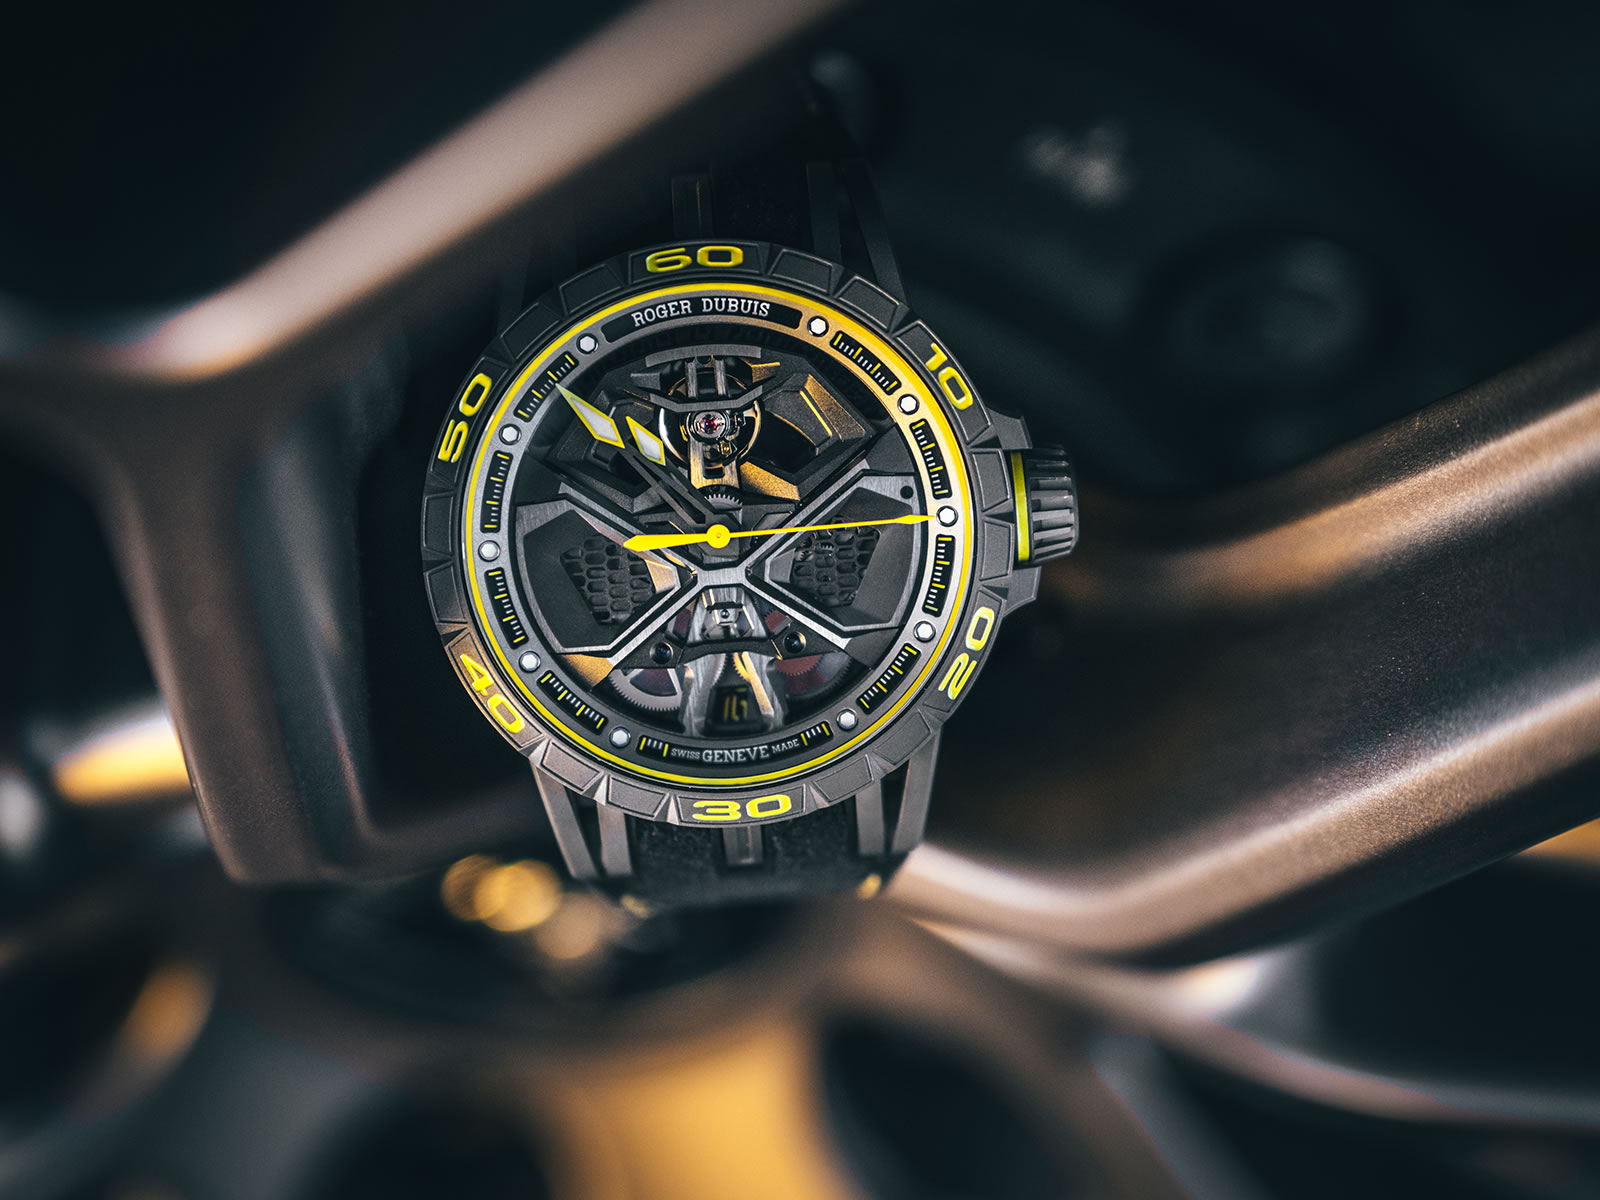 rddbex0792-roger-dubuis-excalibur-huracan-performante-4-.jpg